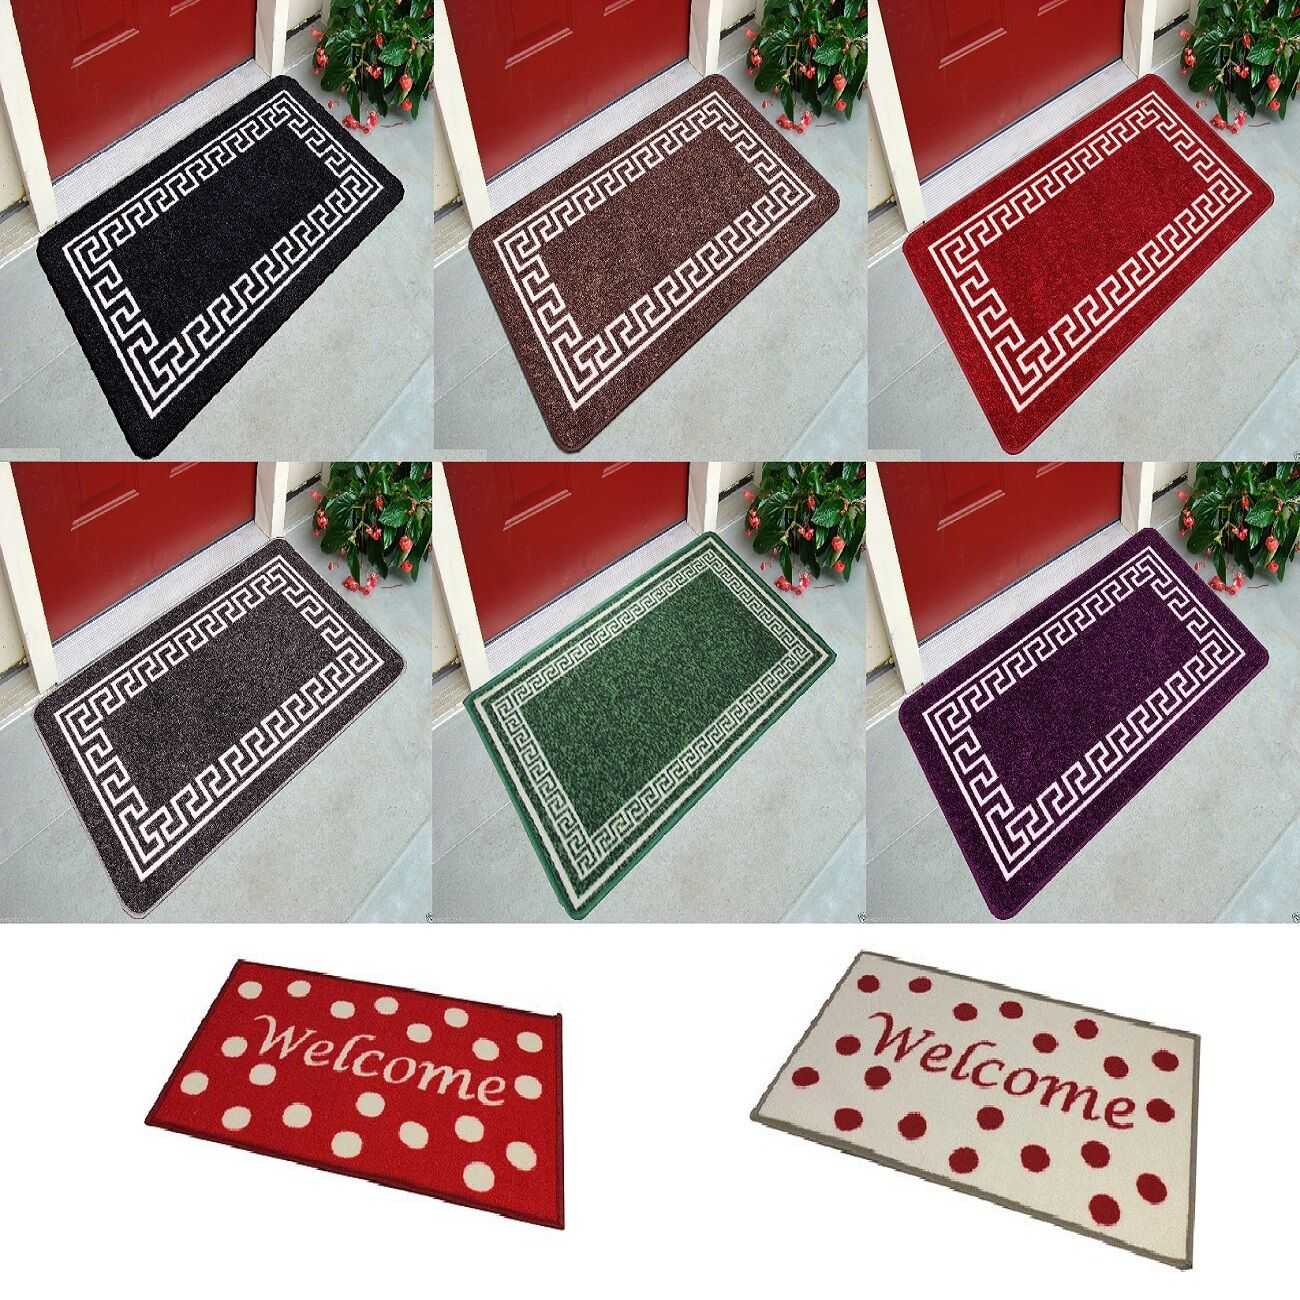 Door Mats Washable Kitchen Rugs Hall Runners Utility Mat Small Medium Home Long